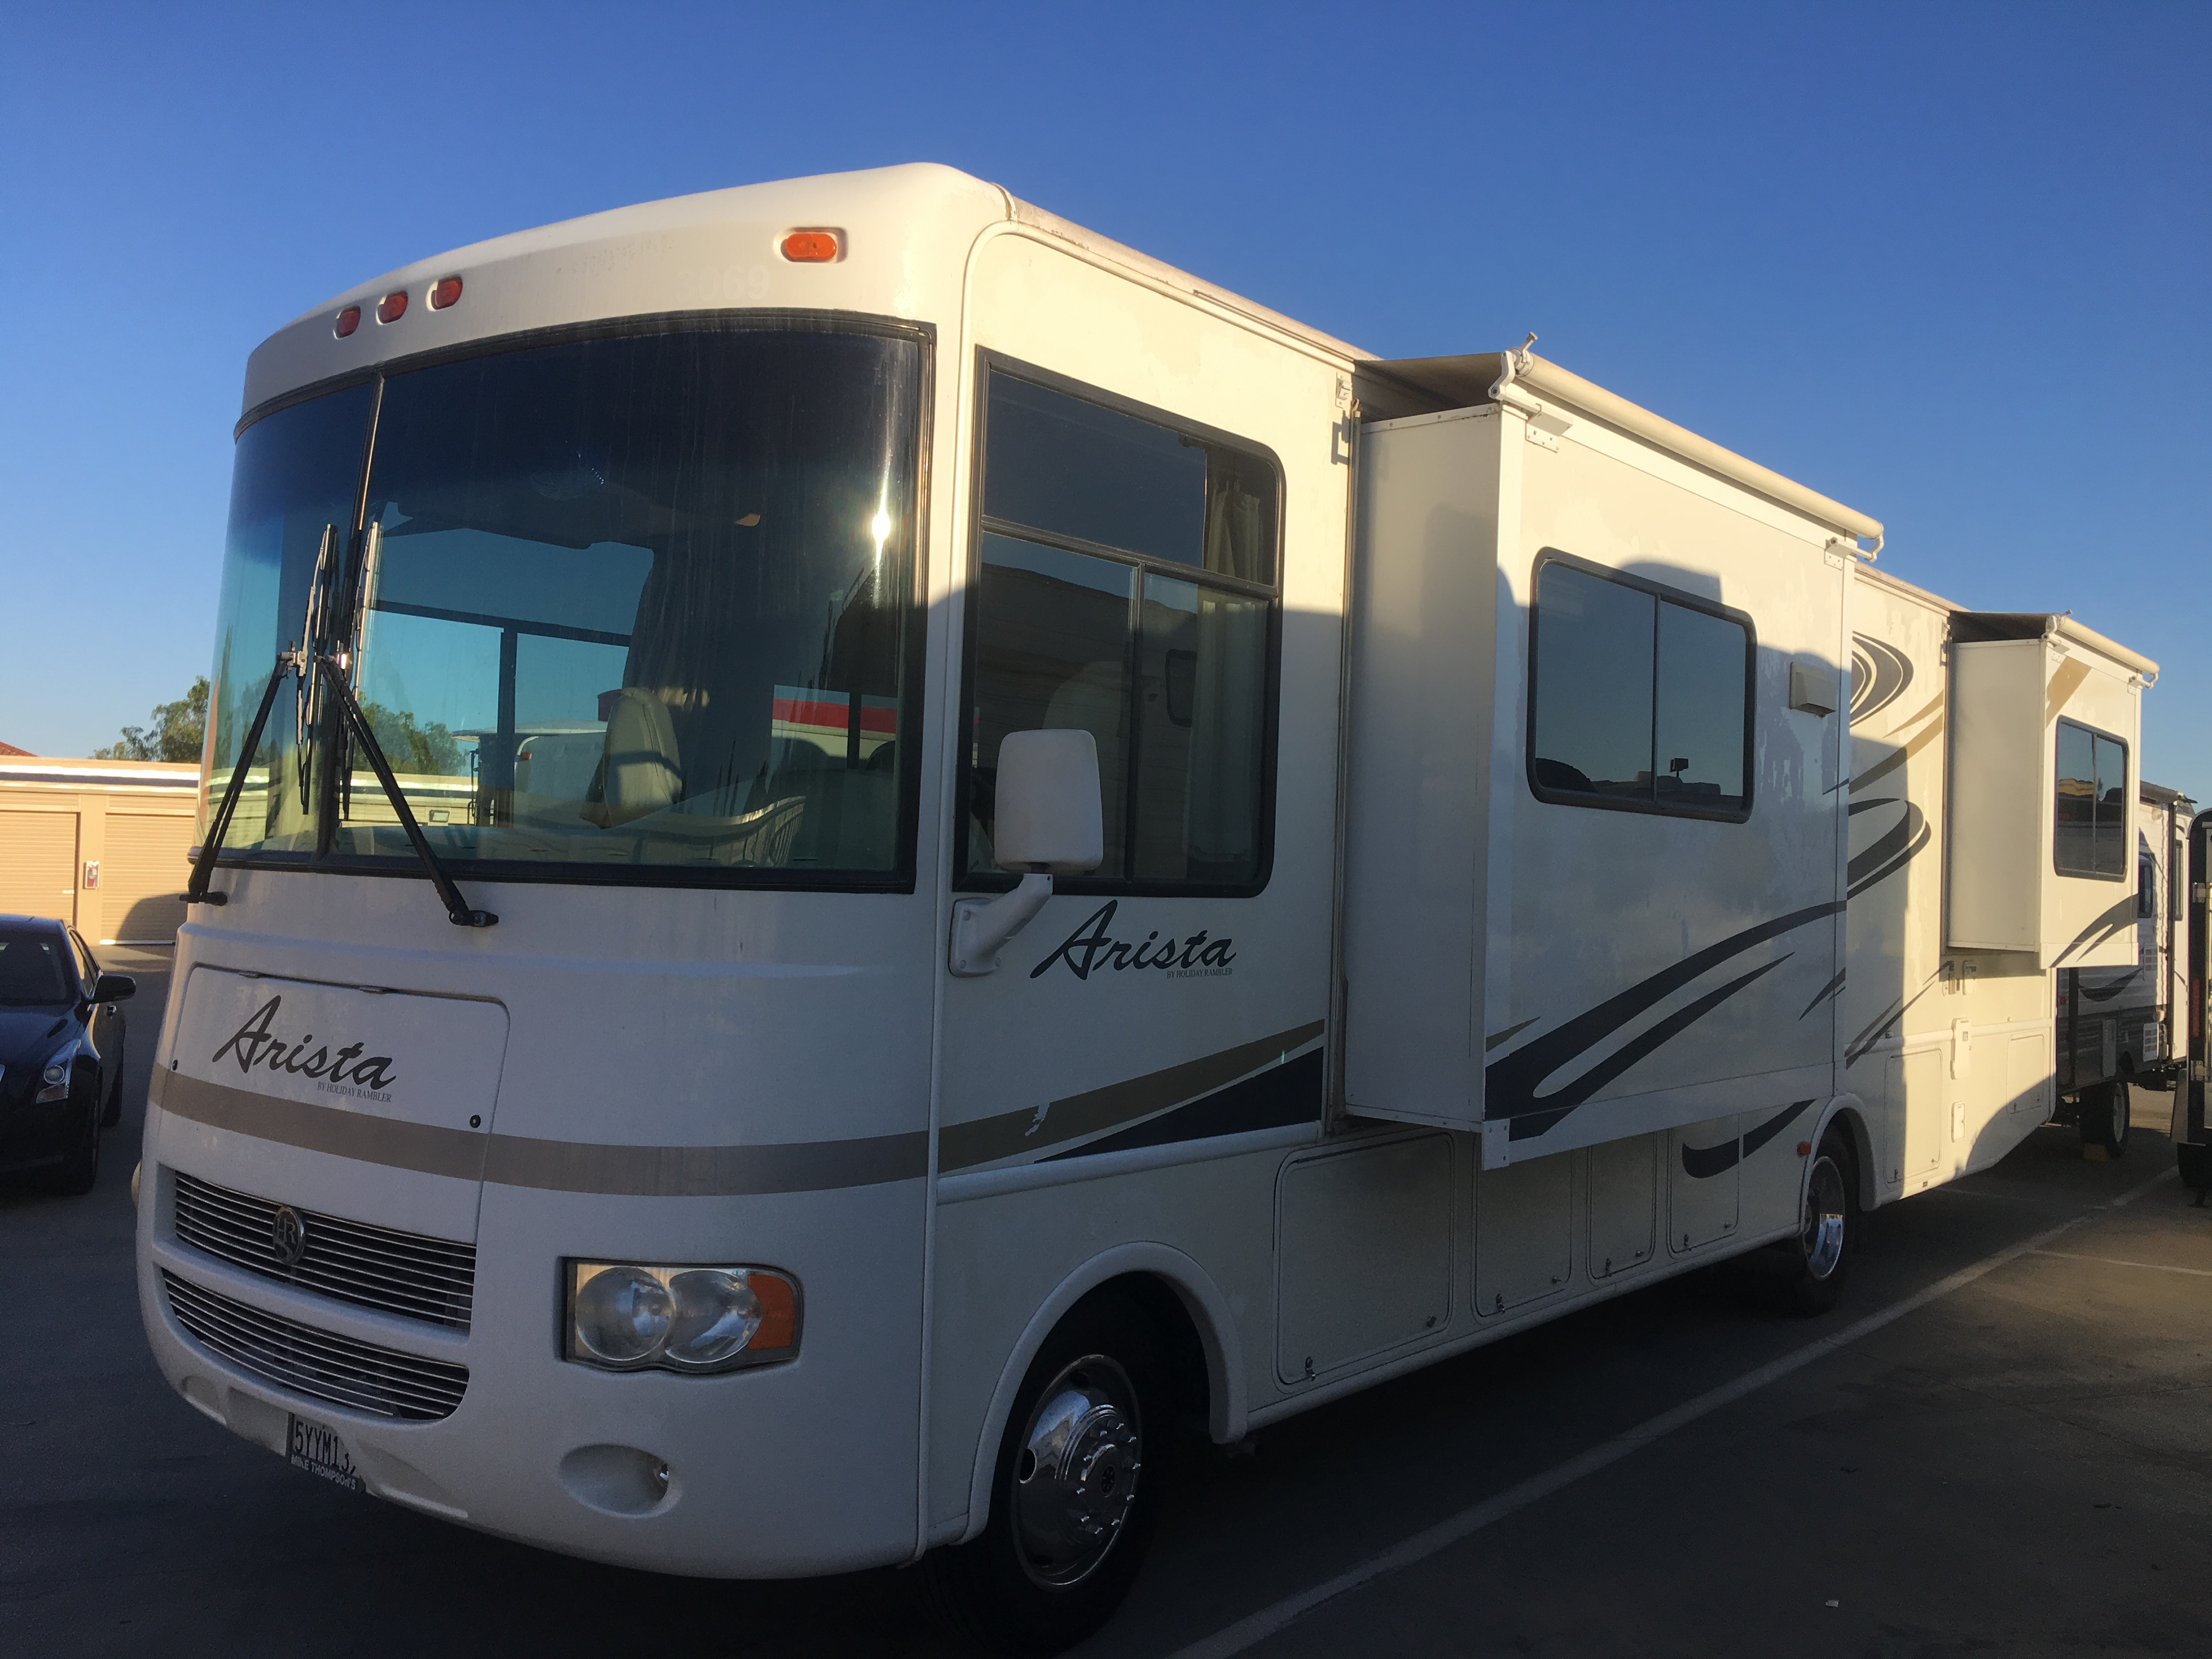 2 slides on the left and 1 on the right. Holiday Rambler Arista 2007